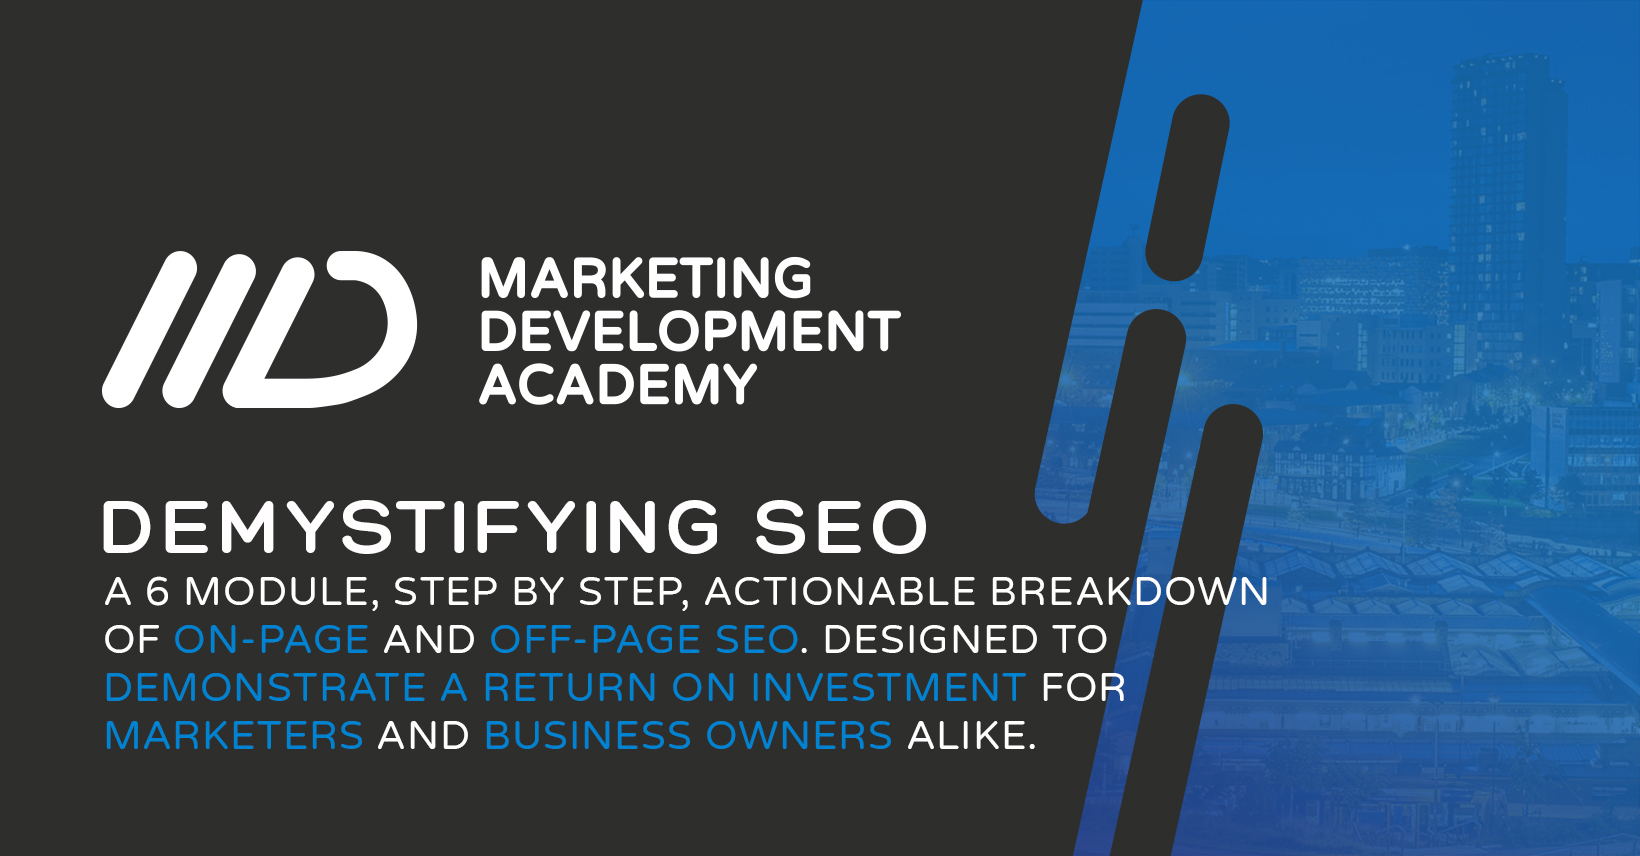 Demystifying SEO Course